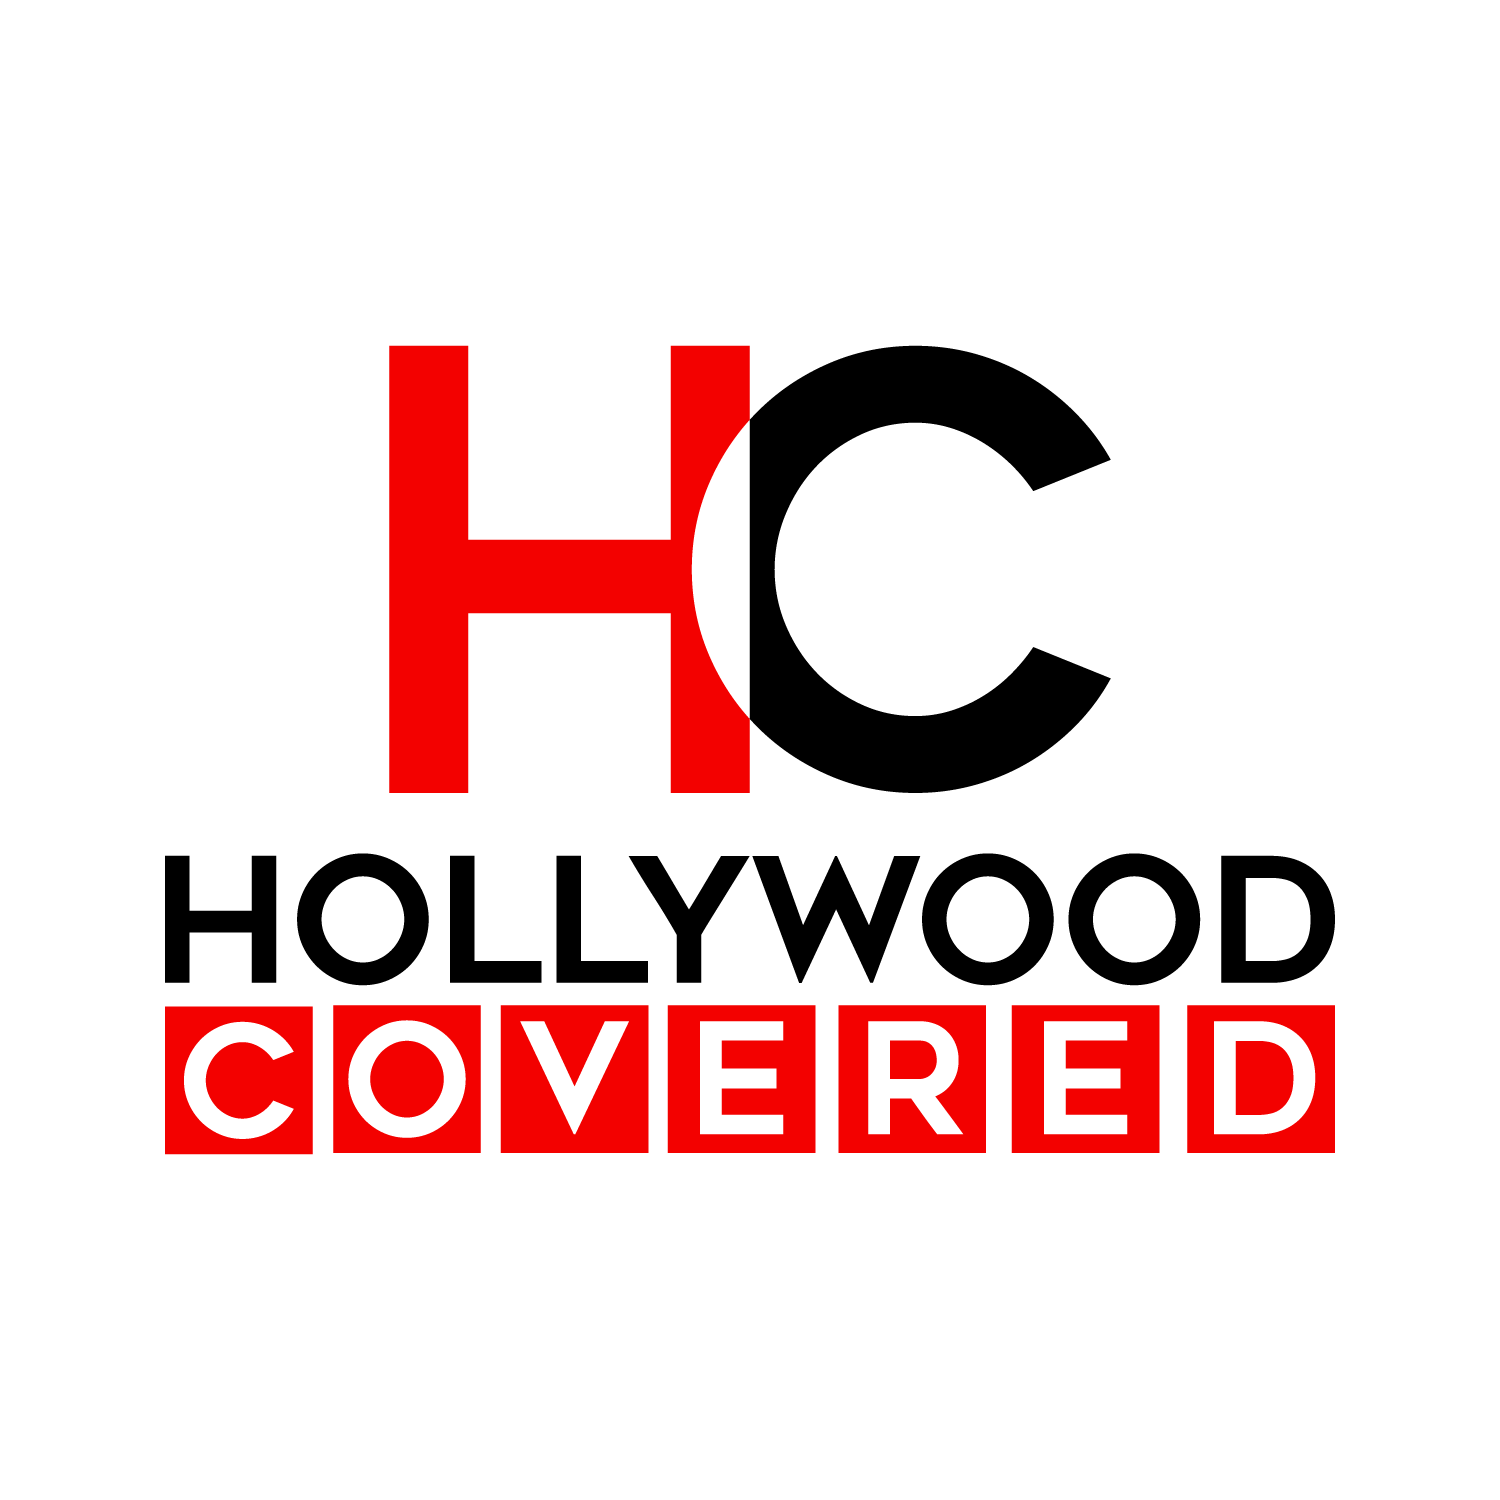 v6-hollywood-covered_logo-11-08-2017